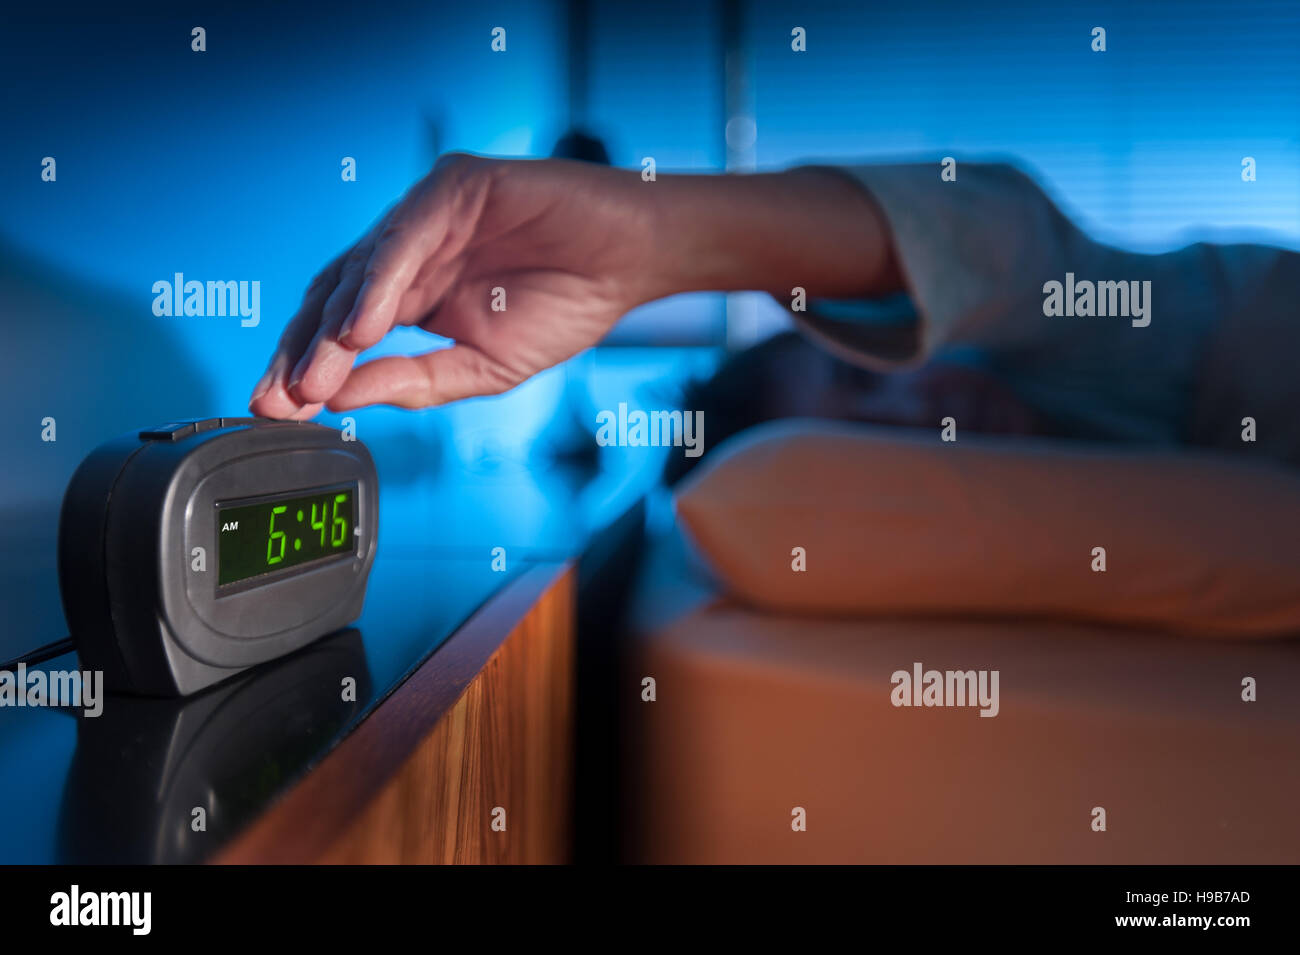 Woman pressing snooze button on early morning digital alarm clock - Stock Image